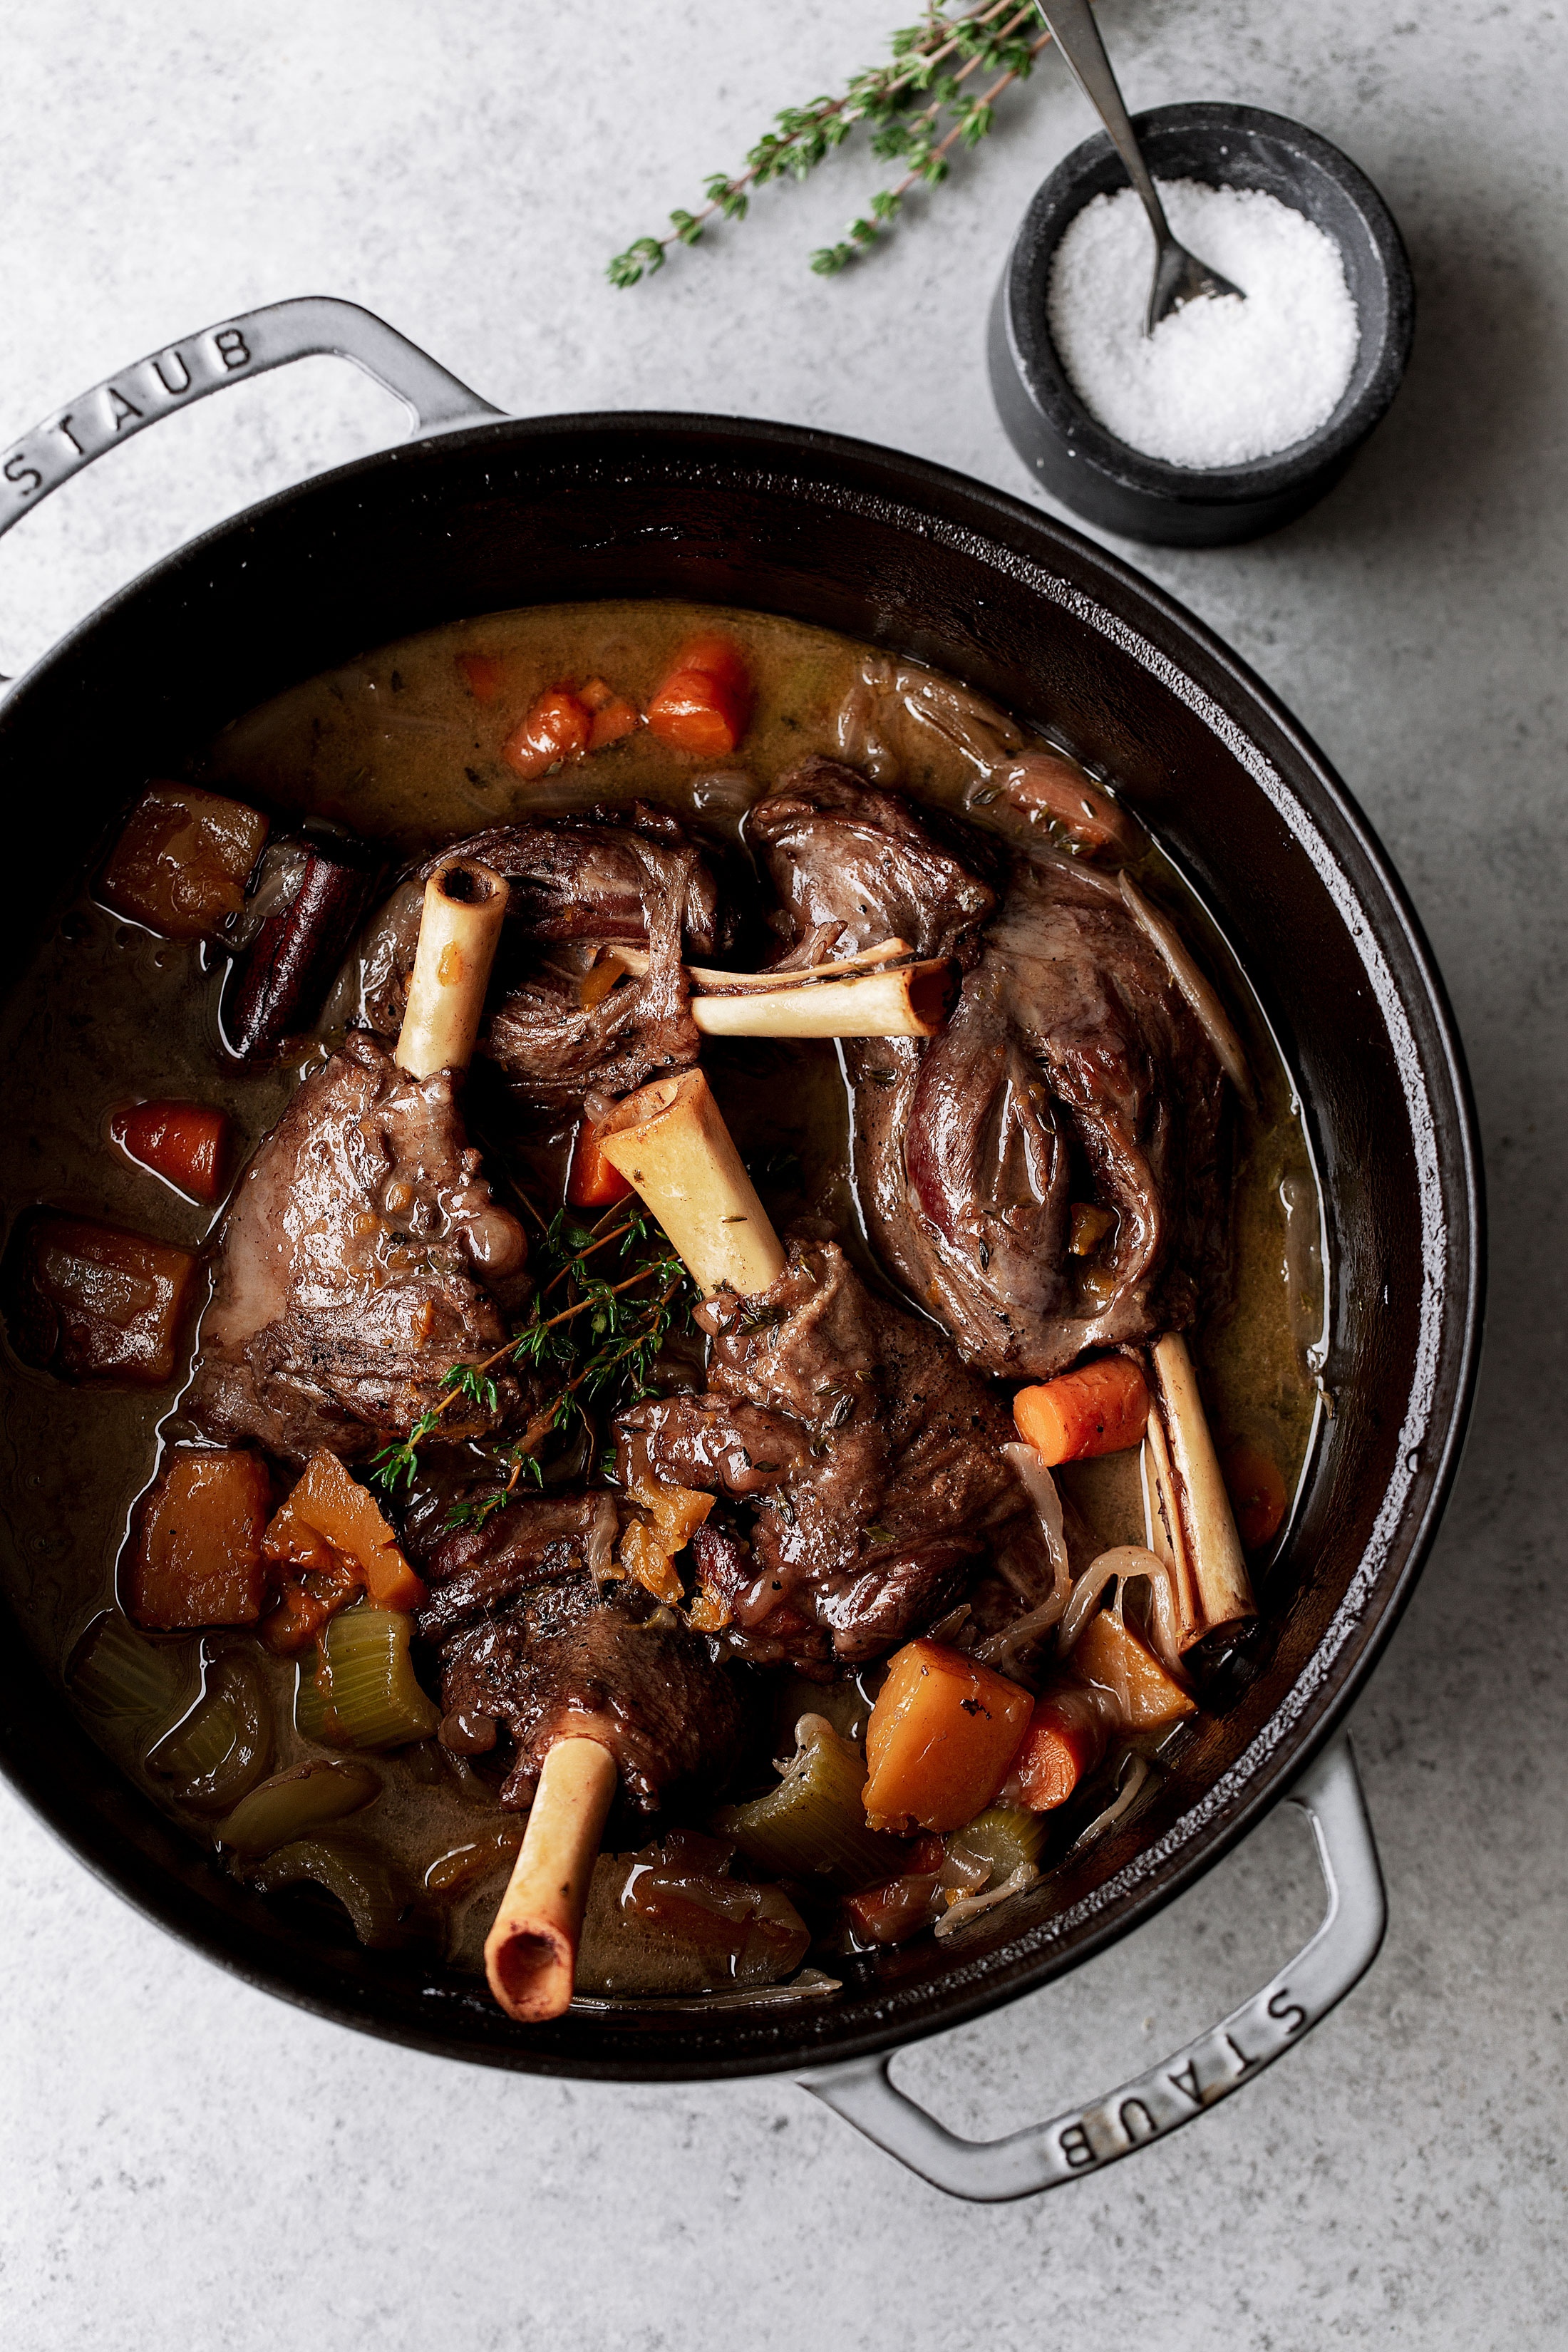 Red Wine Braised Lamb Shanks with Butternut Squash in pot recipe from cooking with cocktail rings